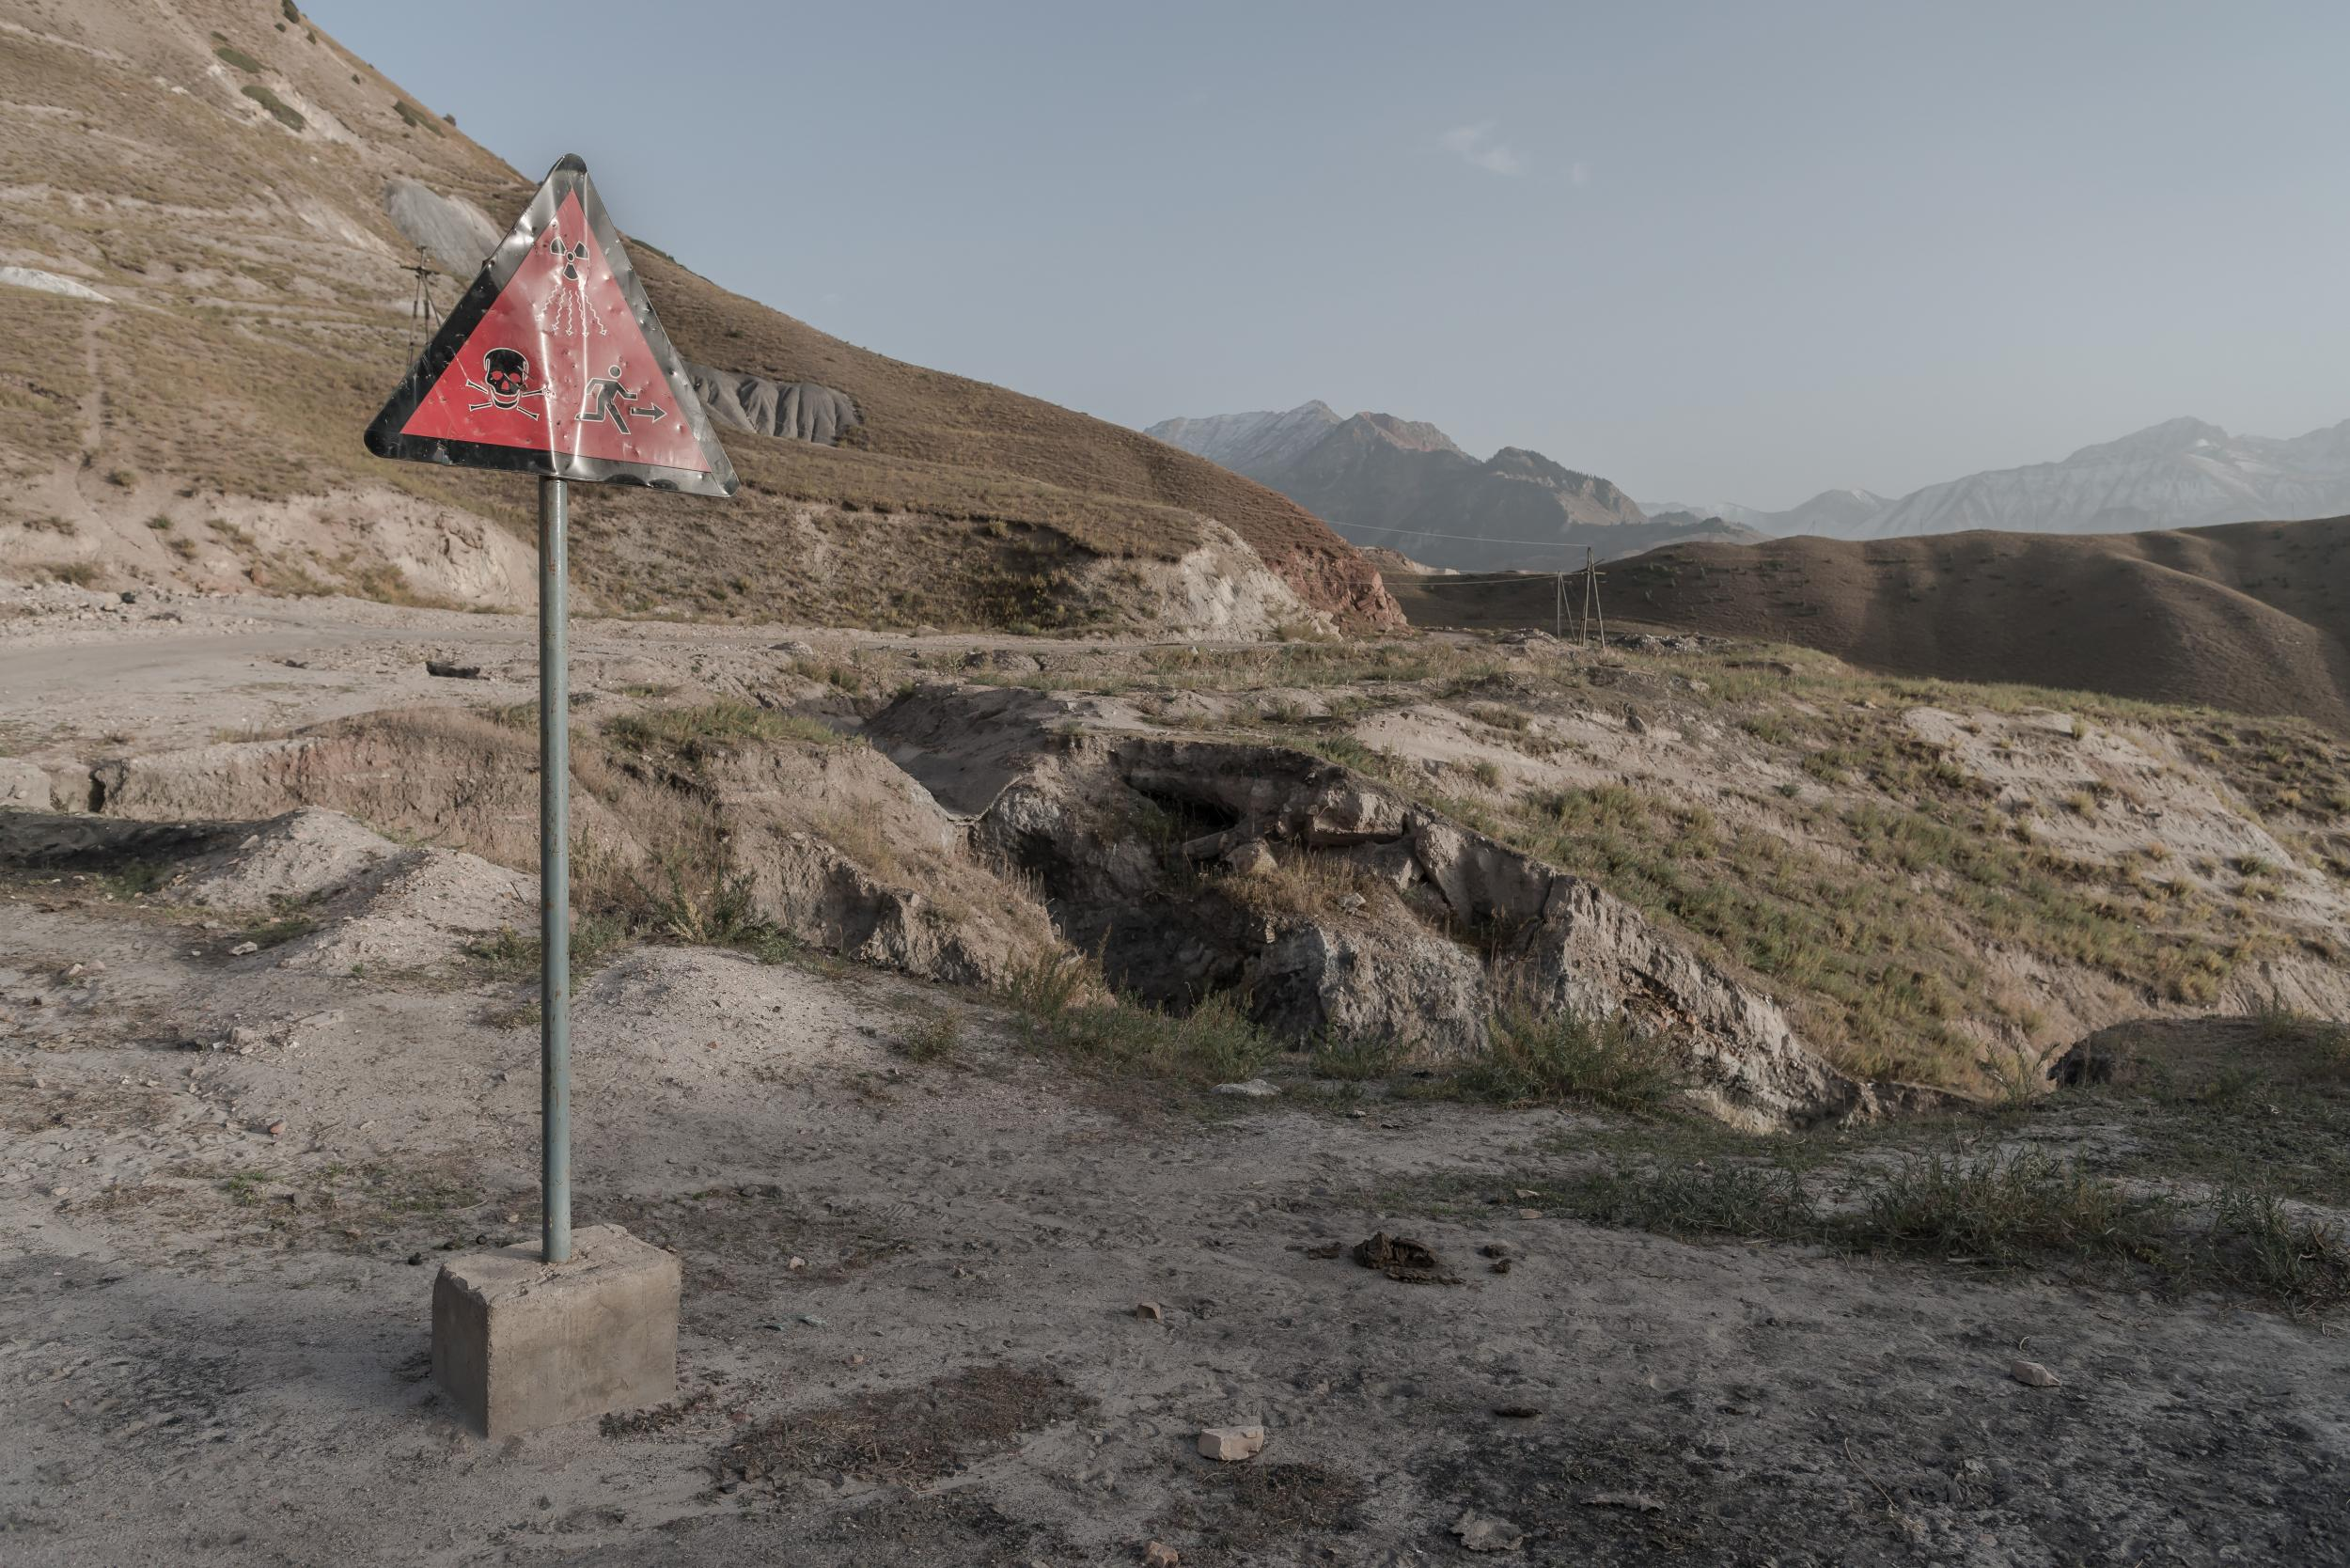 What it's like to stay in a former uranium mining town in Kyrgyzstan